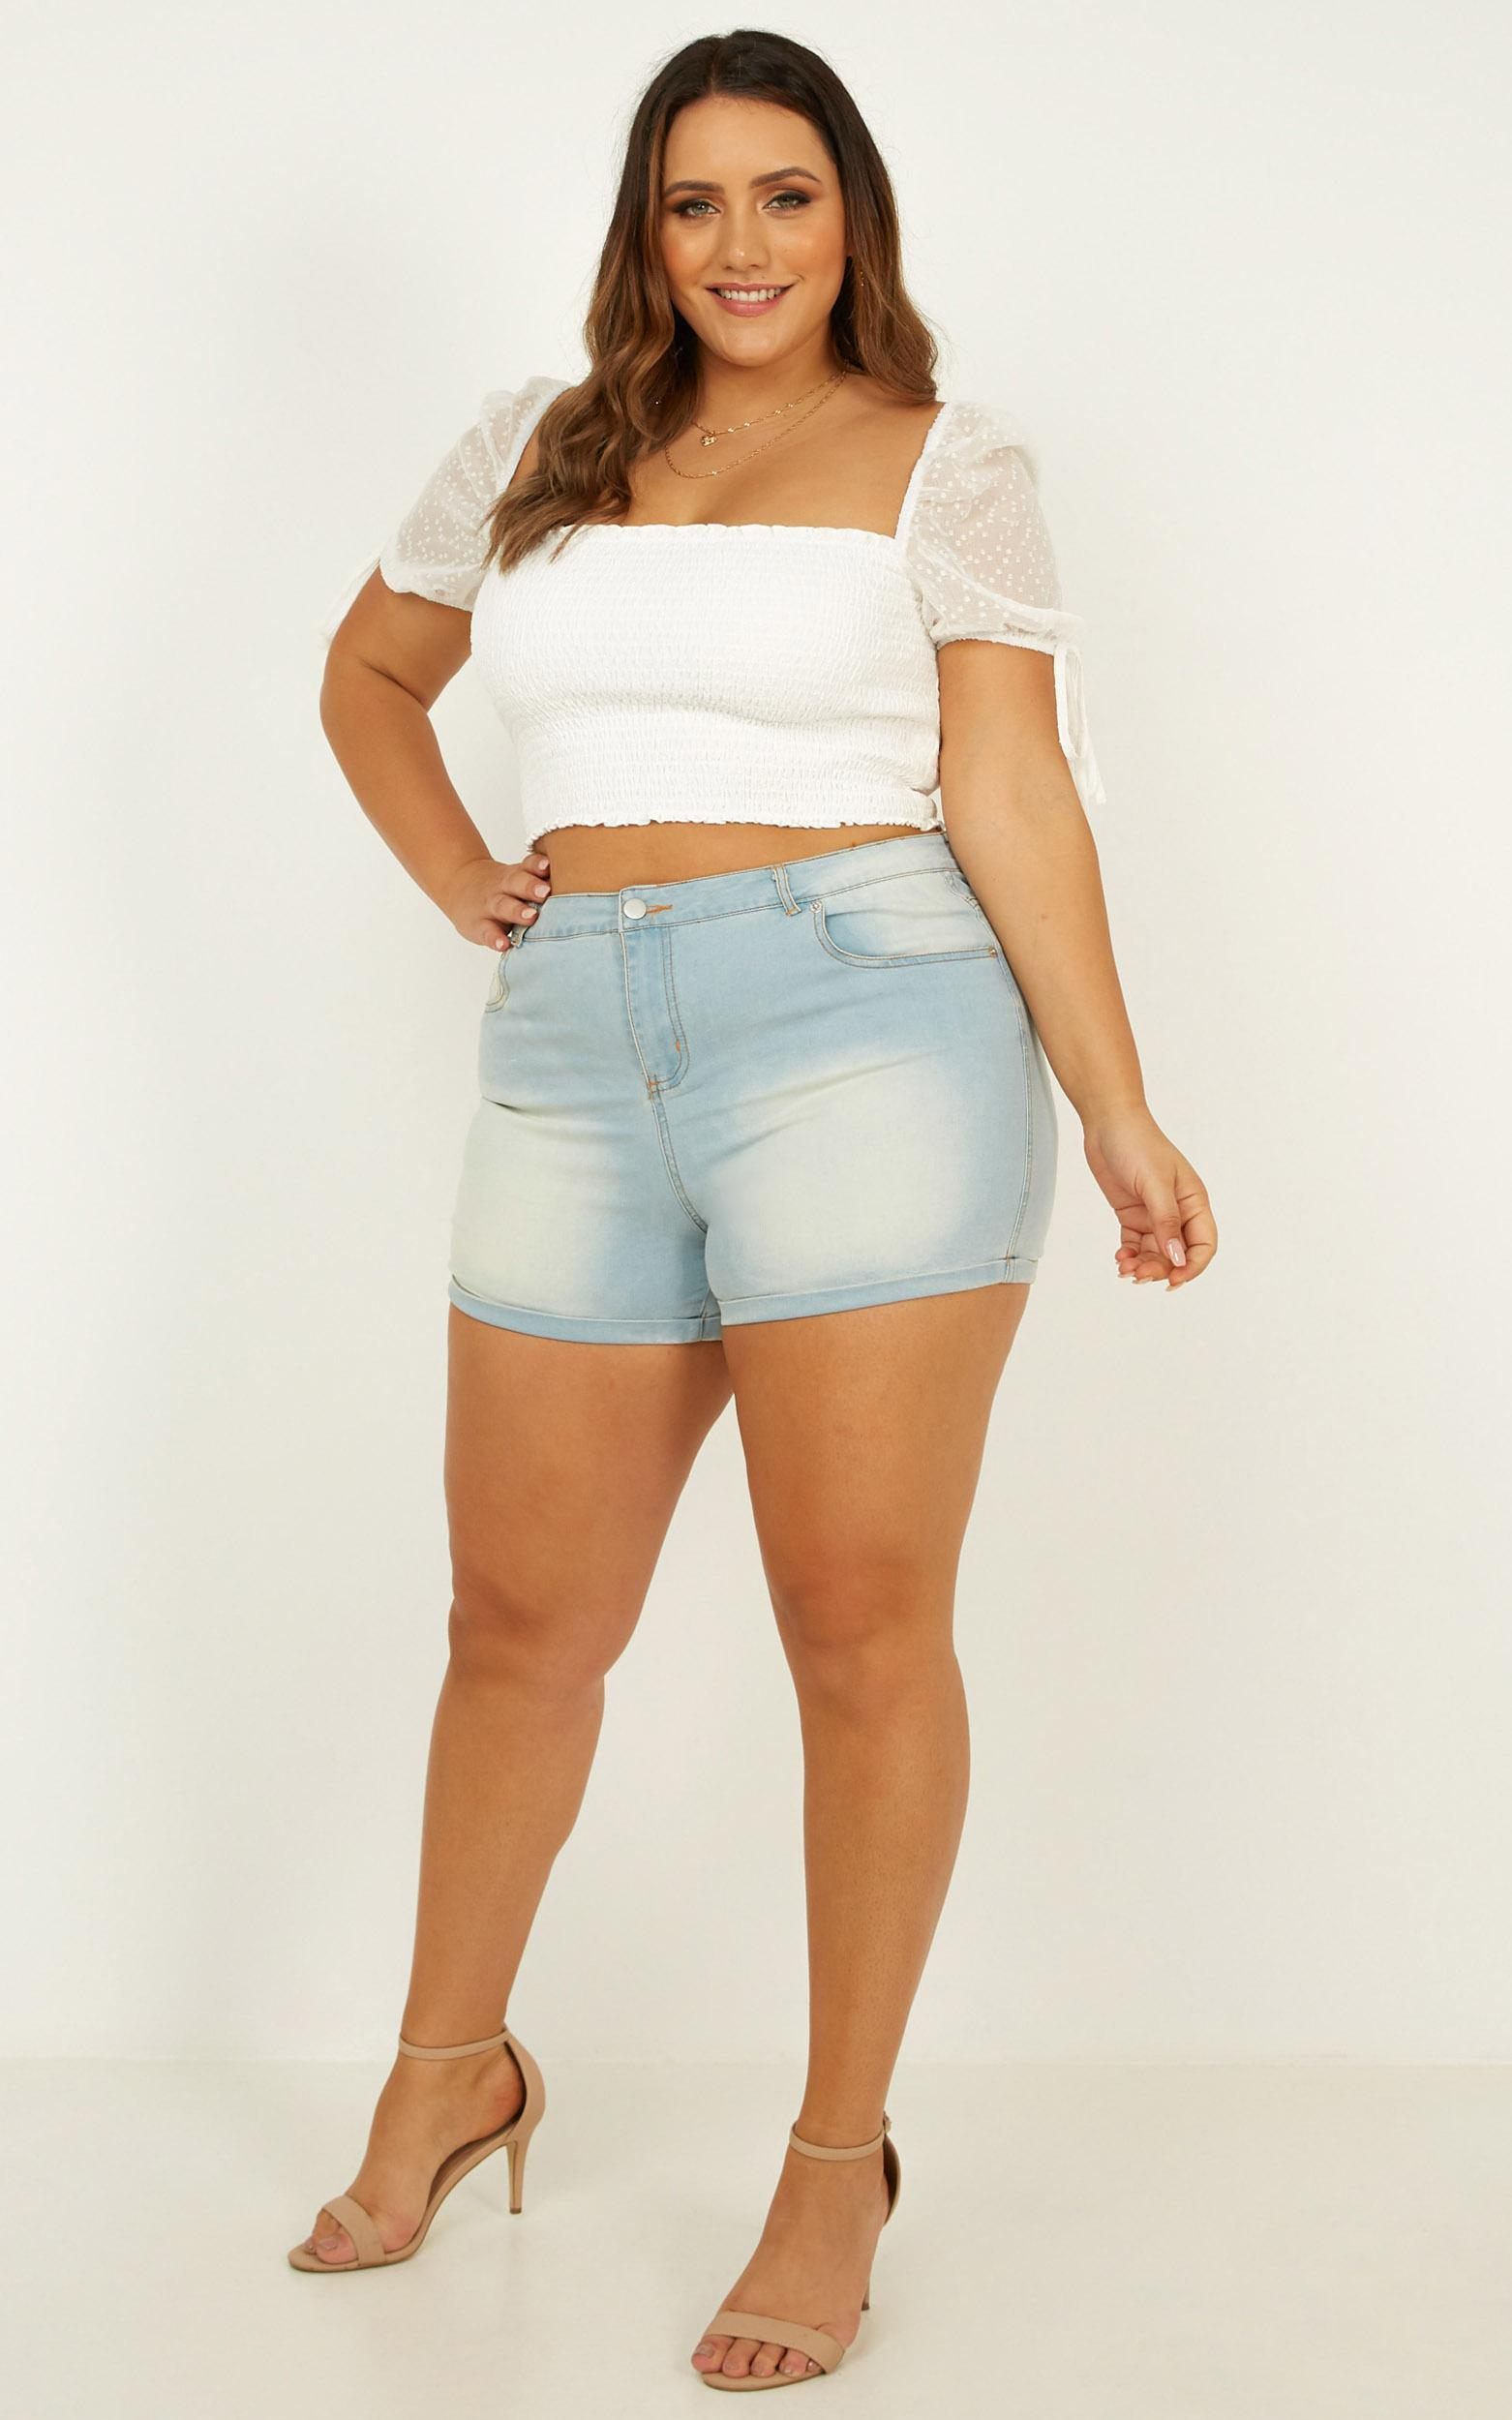 Next Vacay Top in white - 14 (XL), White, hi-res image number null